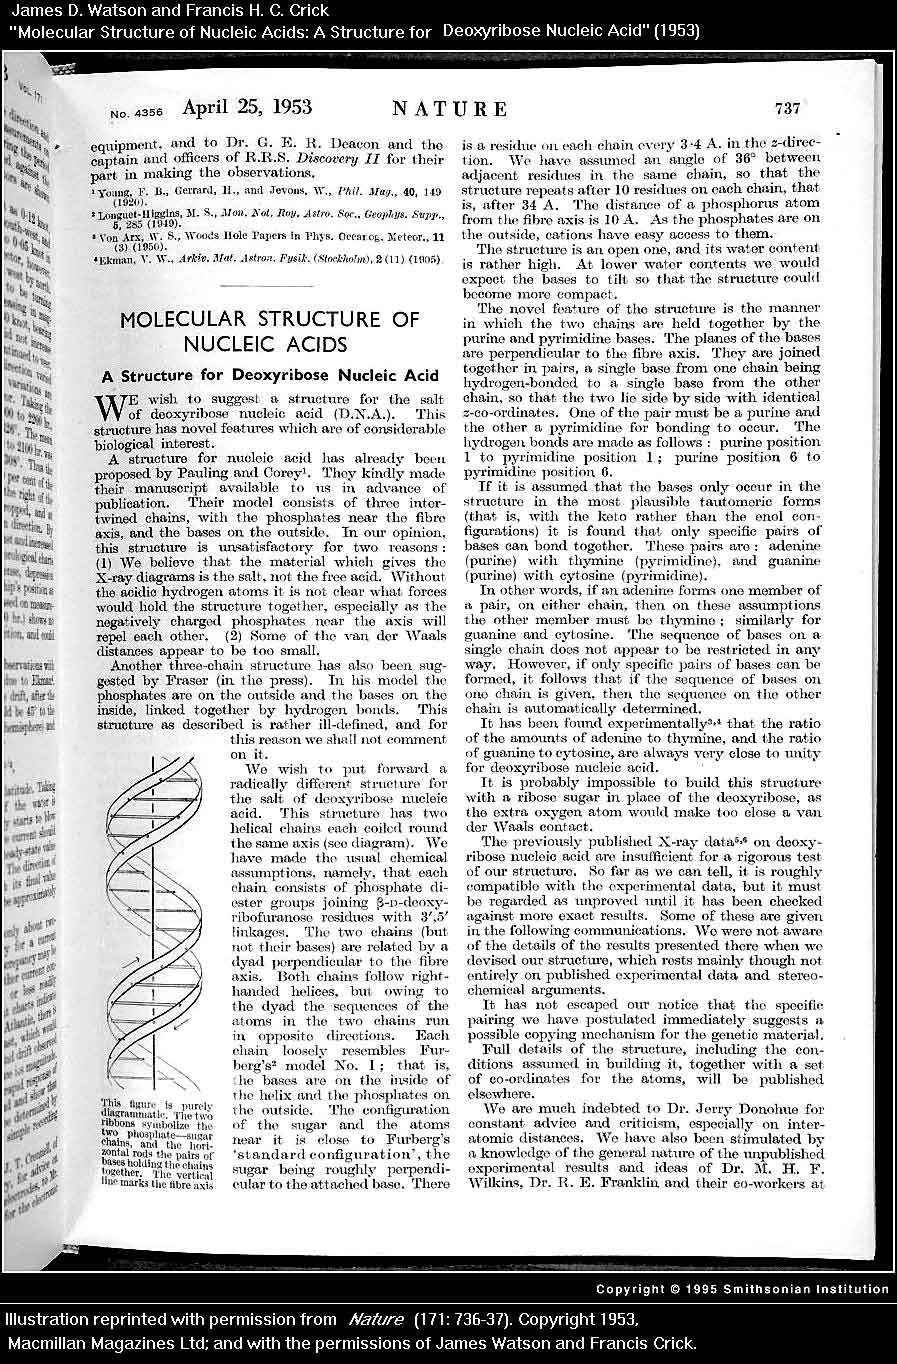 watson and crick dna research paper Genetics and genomics timeline began working informally with the american post-doctorate james watson crick had and research into dna brought.